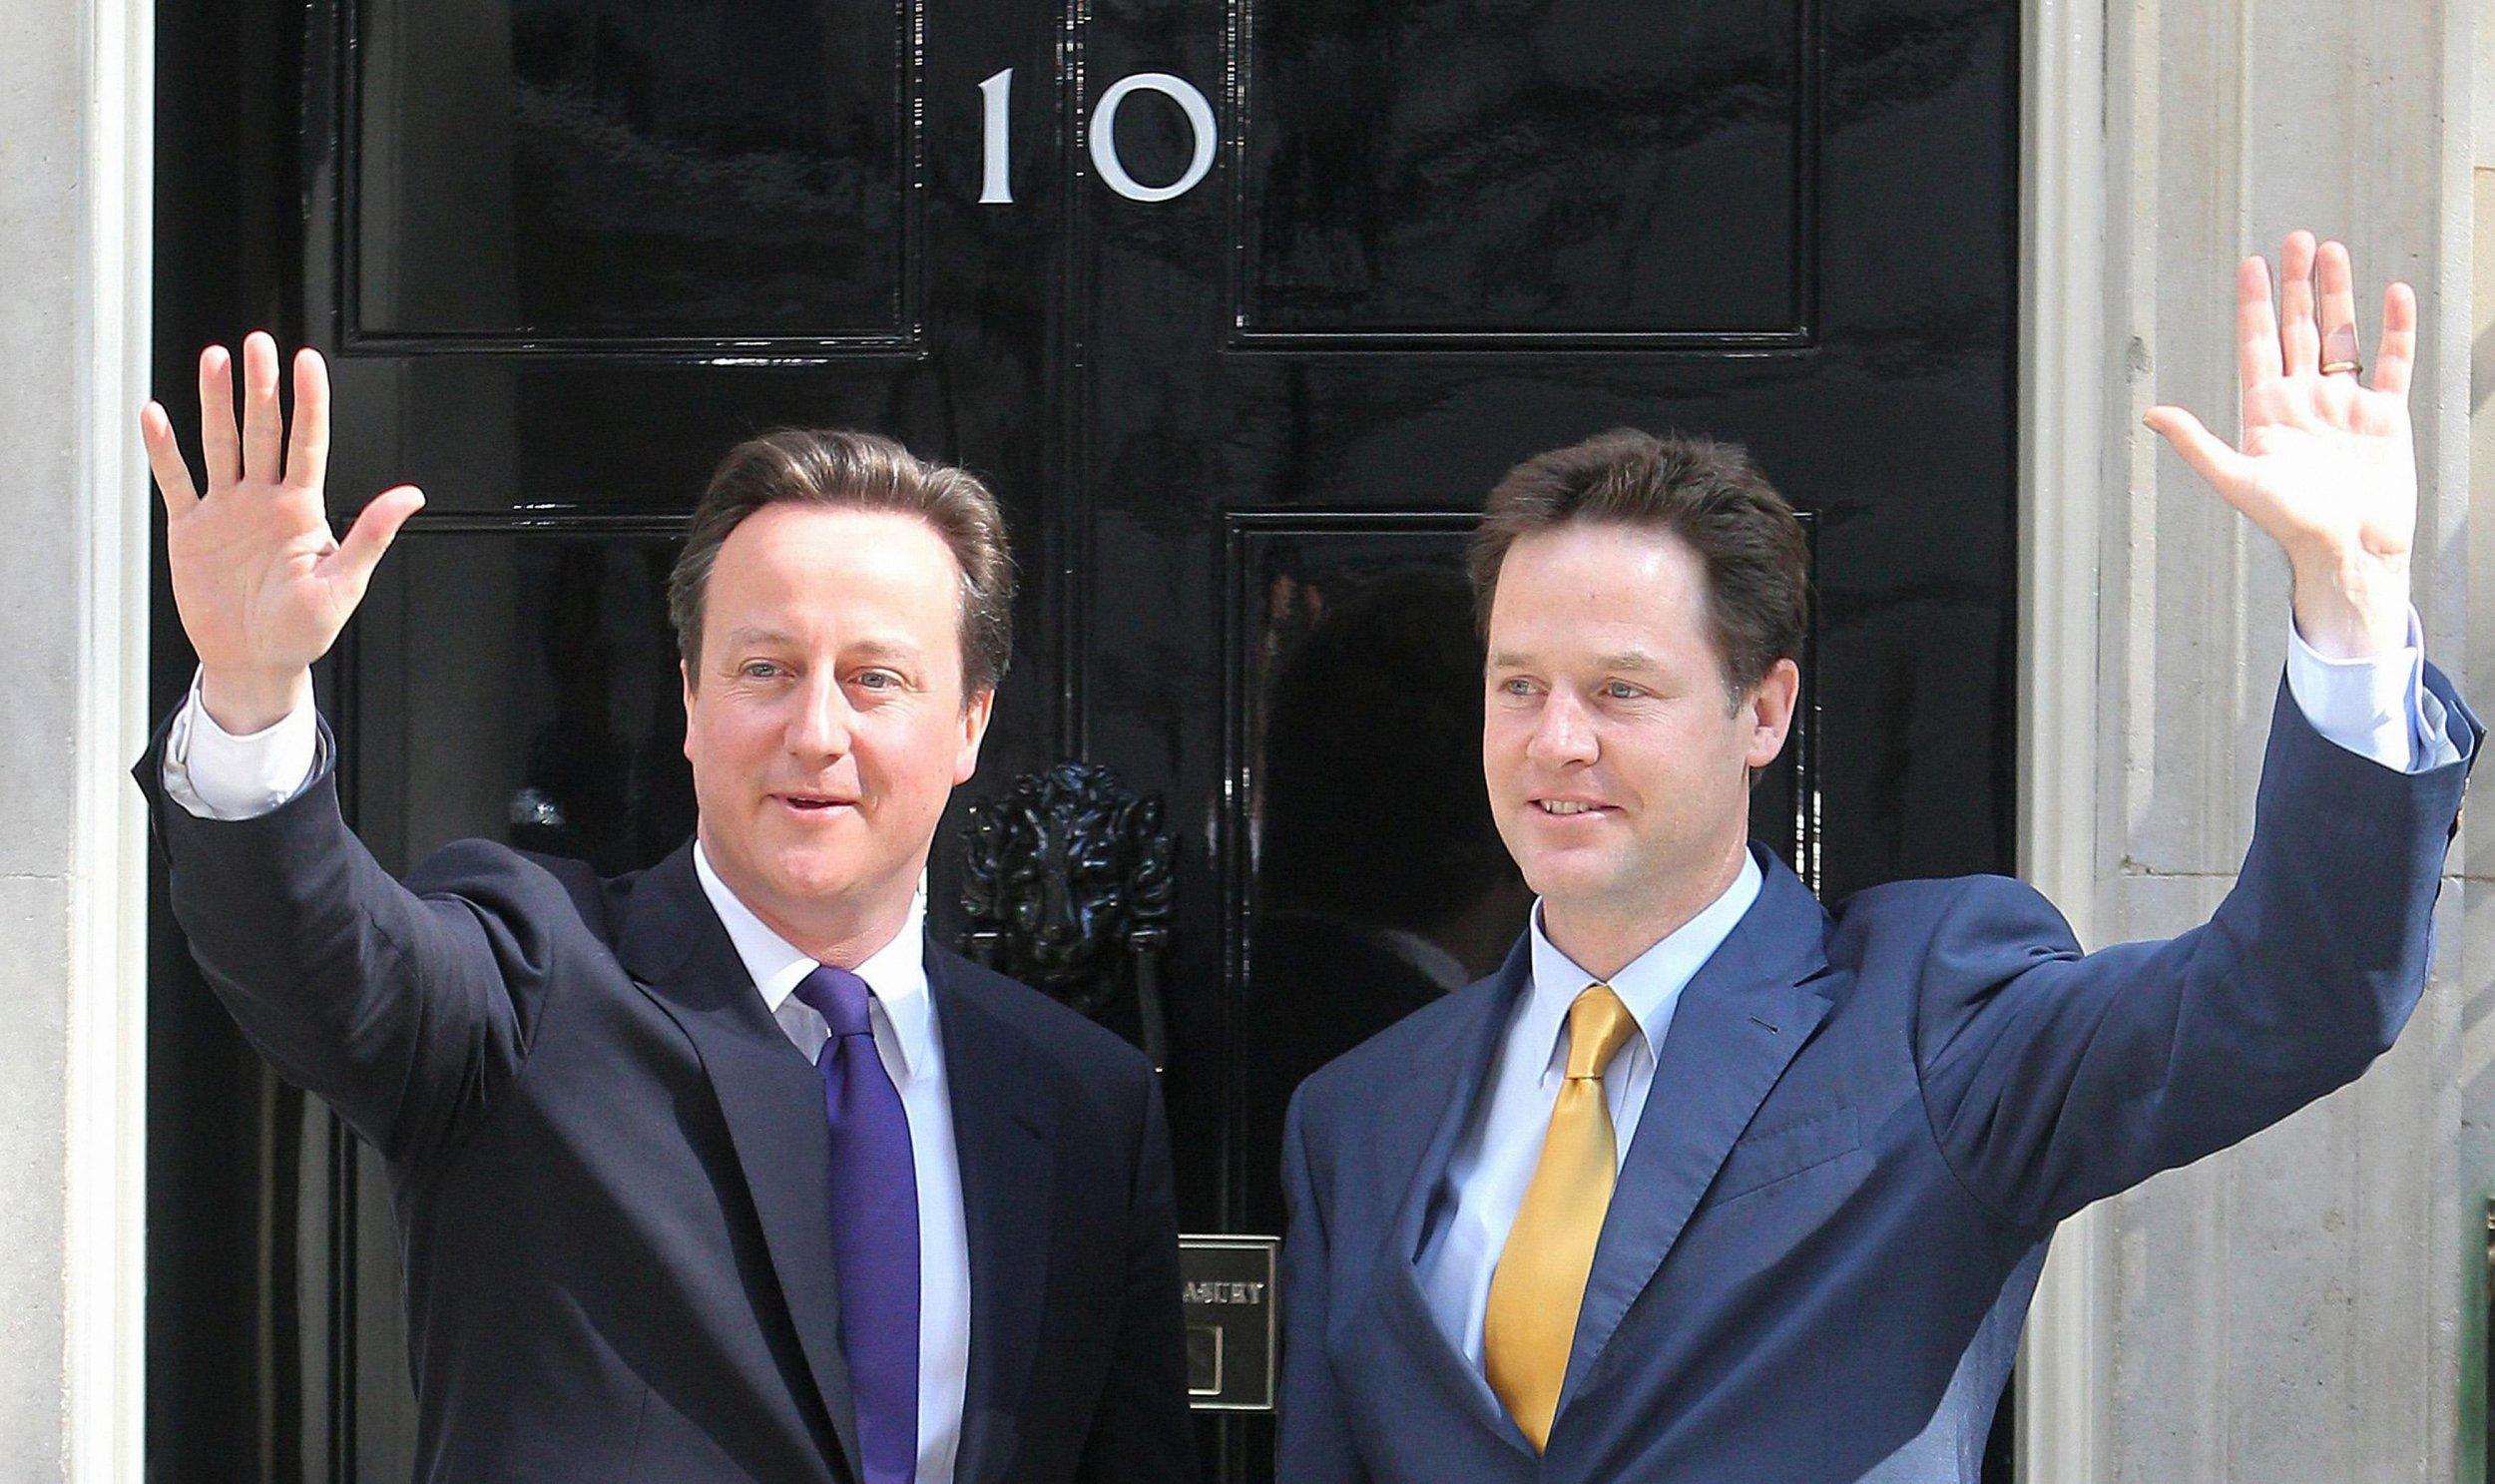 What is austerity and what does it mean in UK politics?